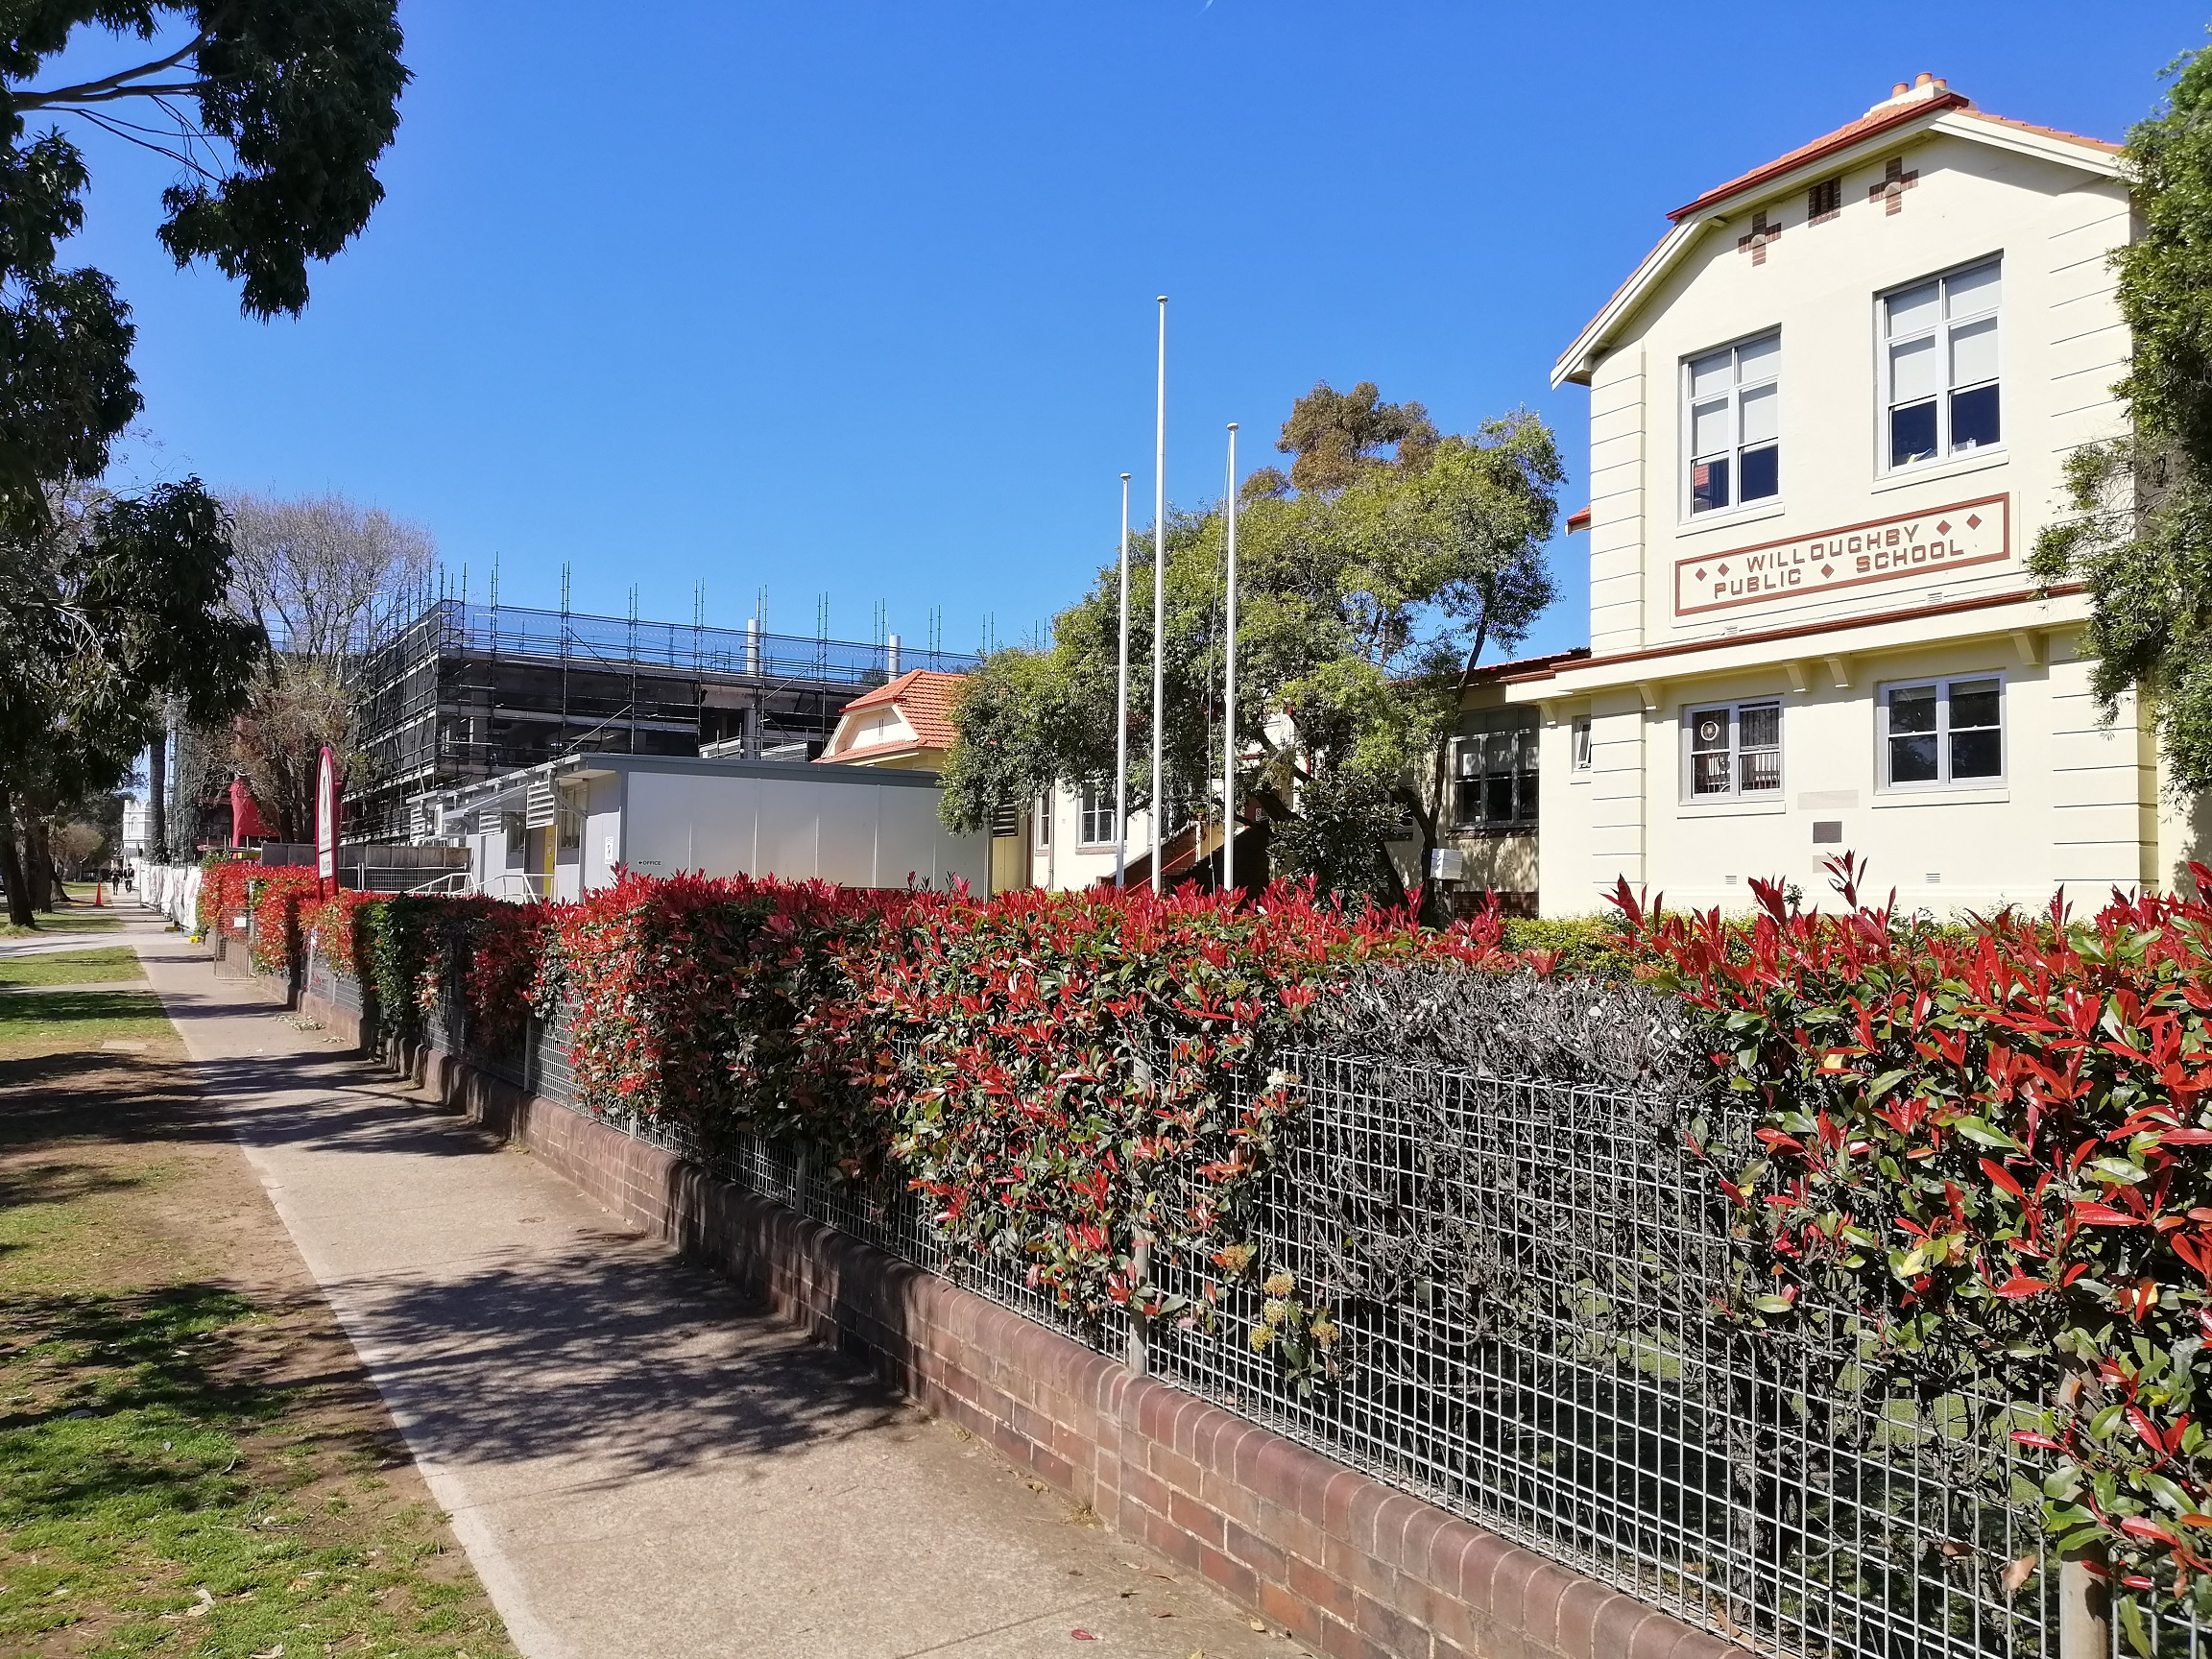 Willloughby Public School